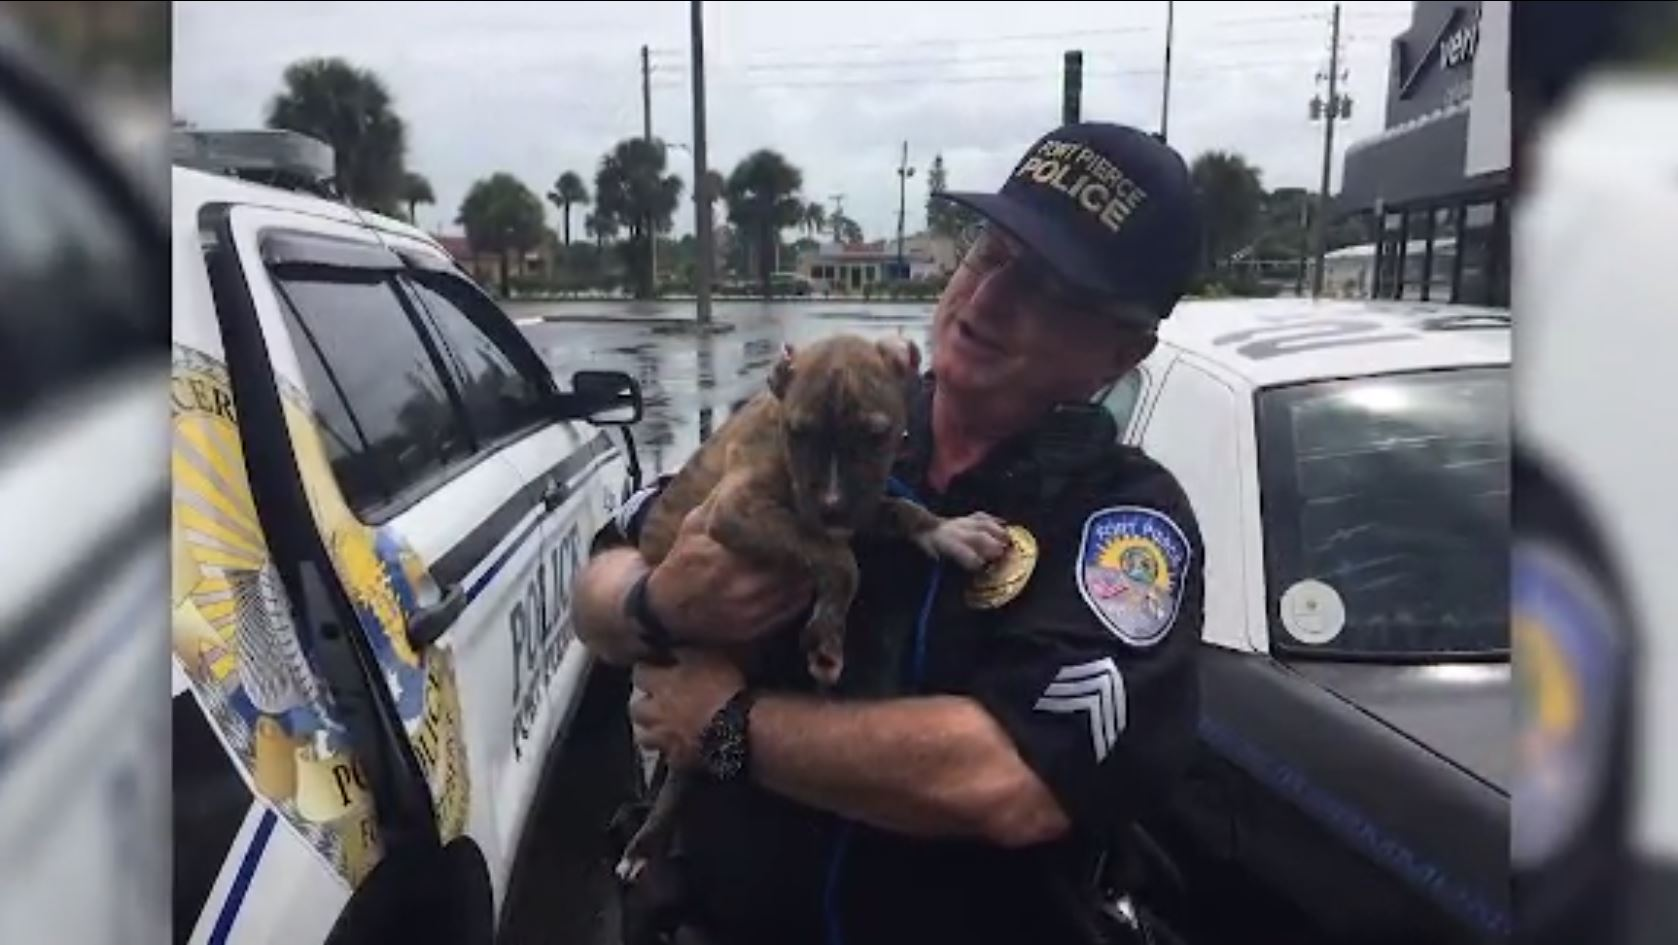 Florida officer takes in puppy not strong enough to stay in